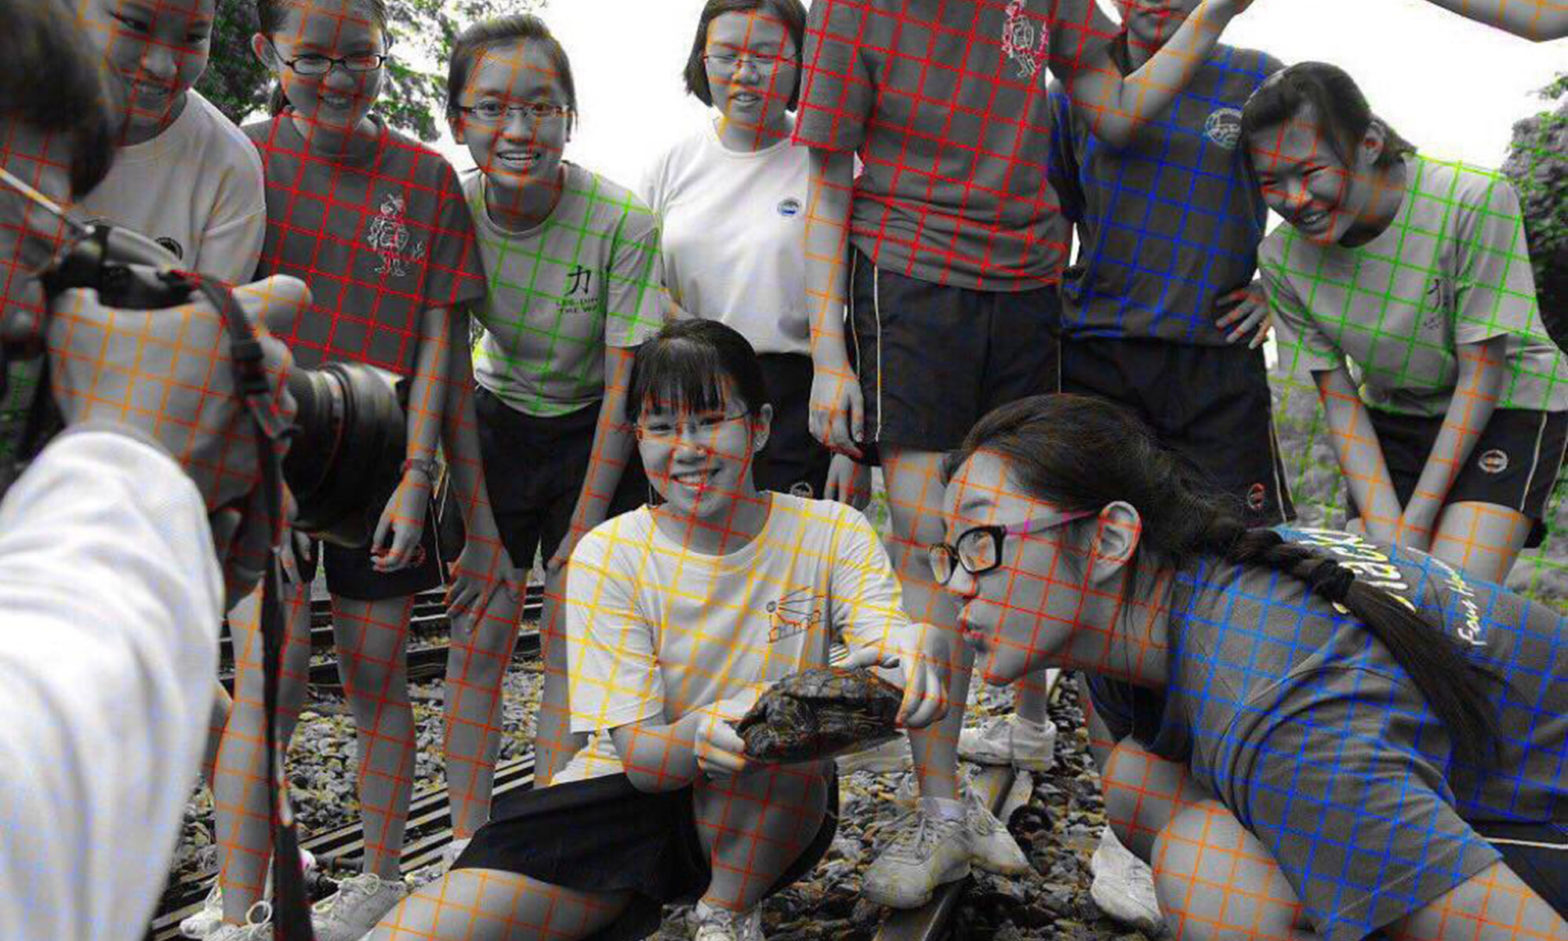 Color Assimilation Grid Illusion